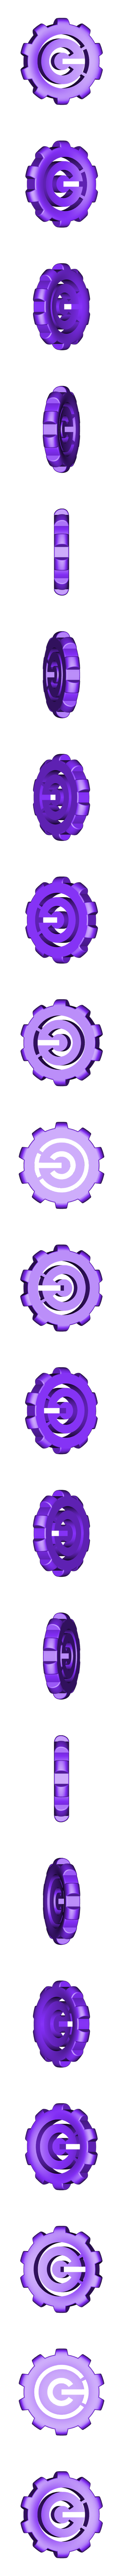 CCT_Coin_Rounded.stl Download free STL file Chaos Coins! - Maker Coin for Chaos Core Tech • 3D printing design, ChaosCoreTech